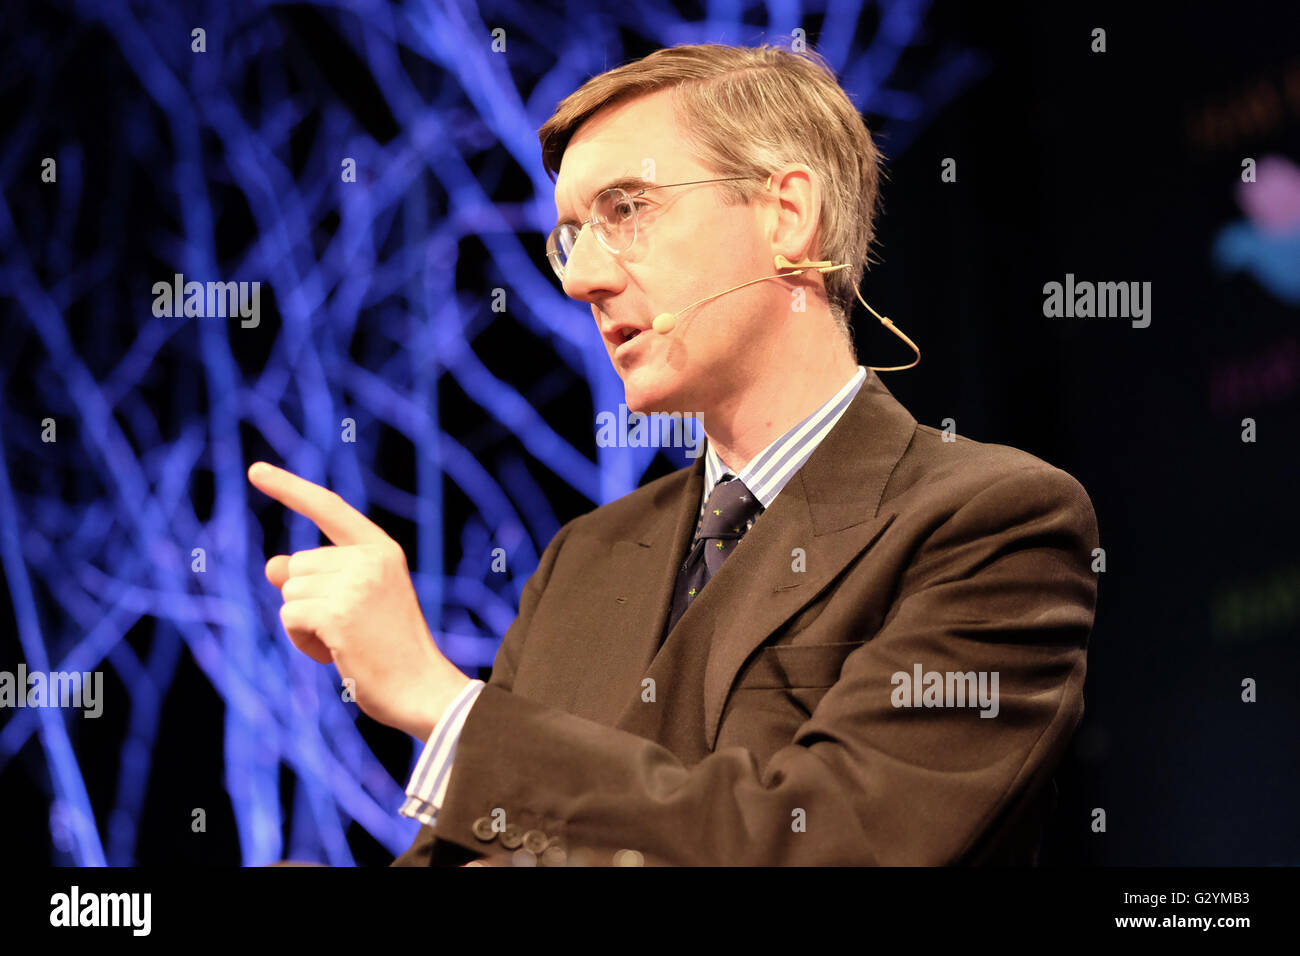 Hay Festival 2016, Wales, UK - June 2016 -  Tory MP Jacob Rees-Mogg on stage at Hay Festival taking part in the - Stock Image